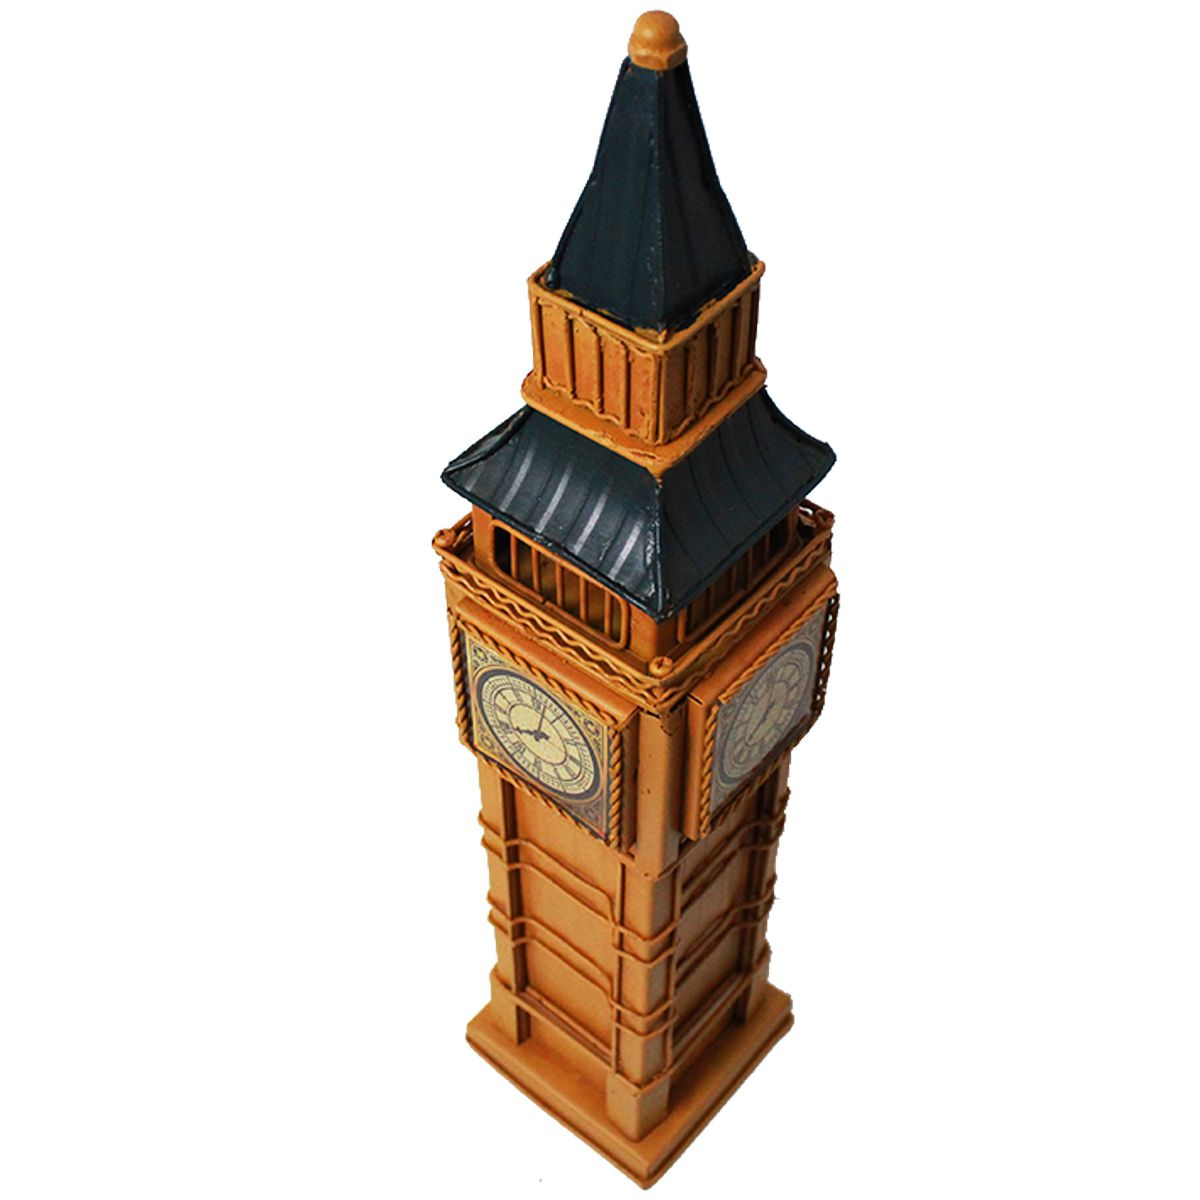 Miniatura de Metal - Torre do Relógio Big Ben 1859